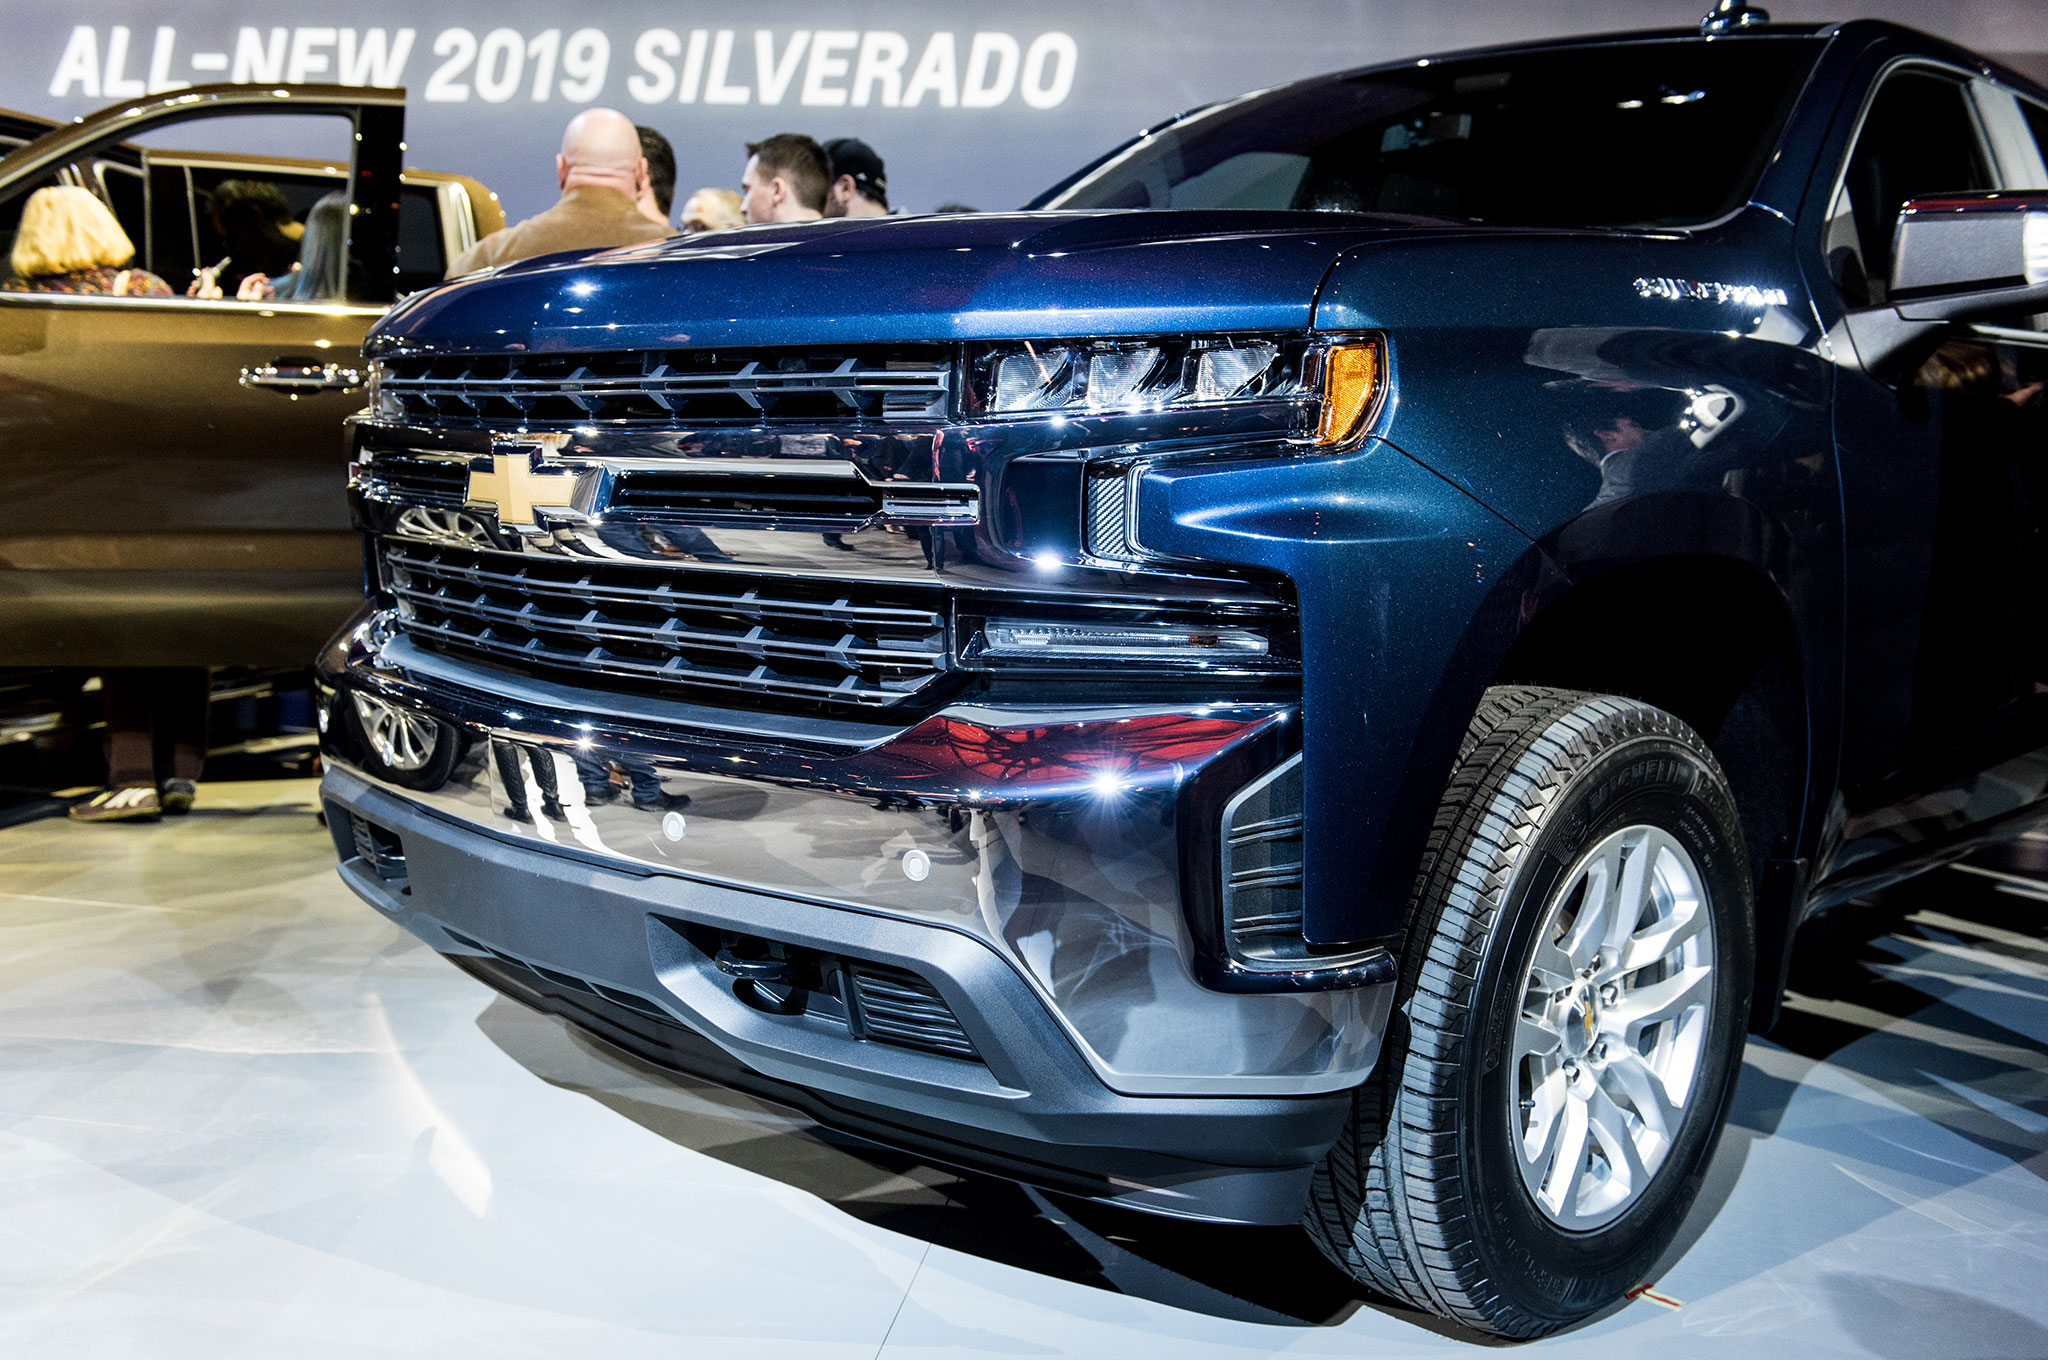 2019 Silverado Ss >> 12 Cool Things About the 2019 Chevrolet Silverado | Automobile Magazine